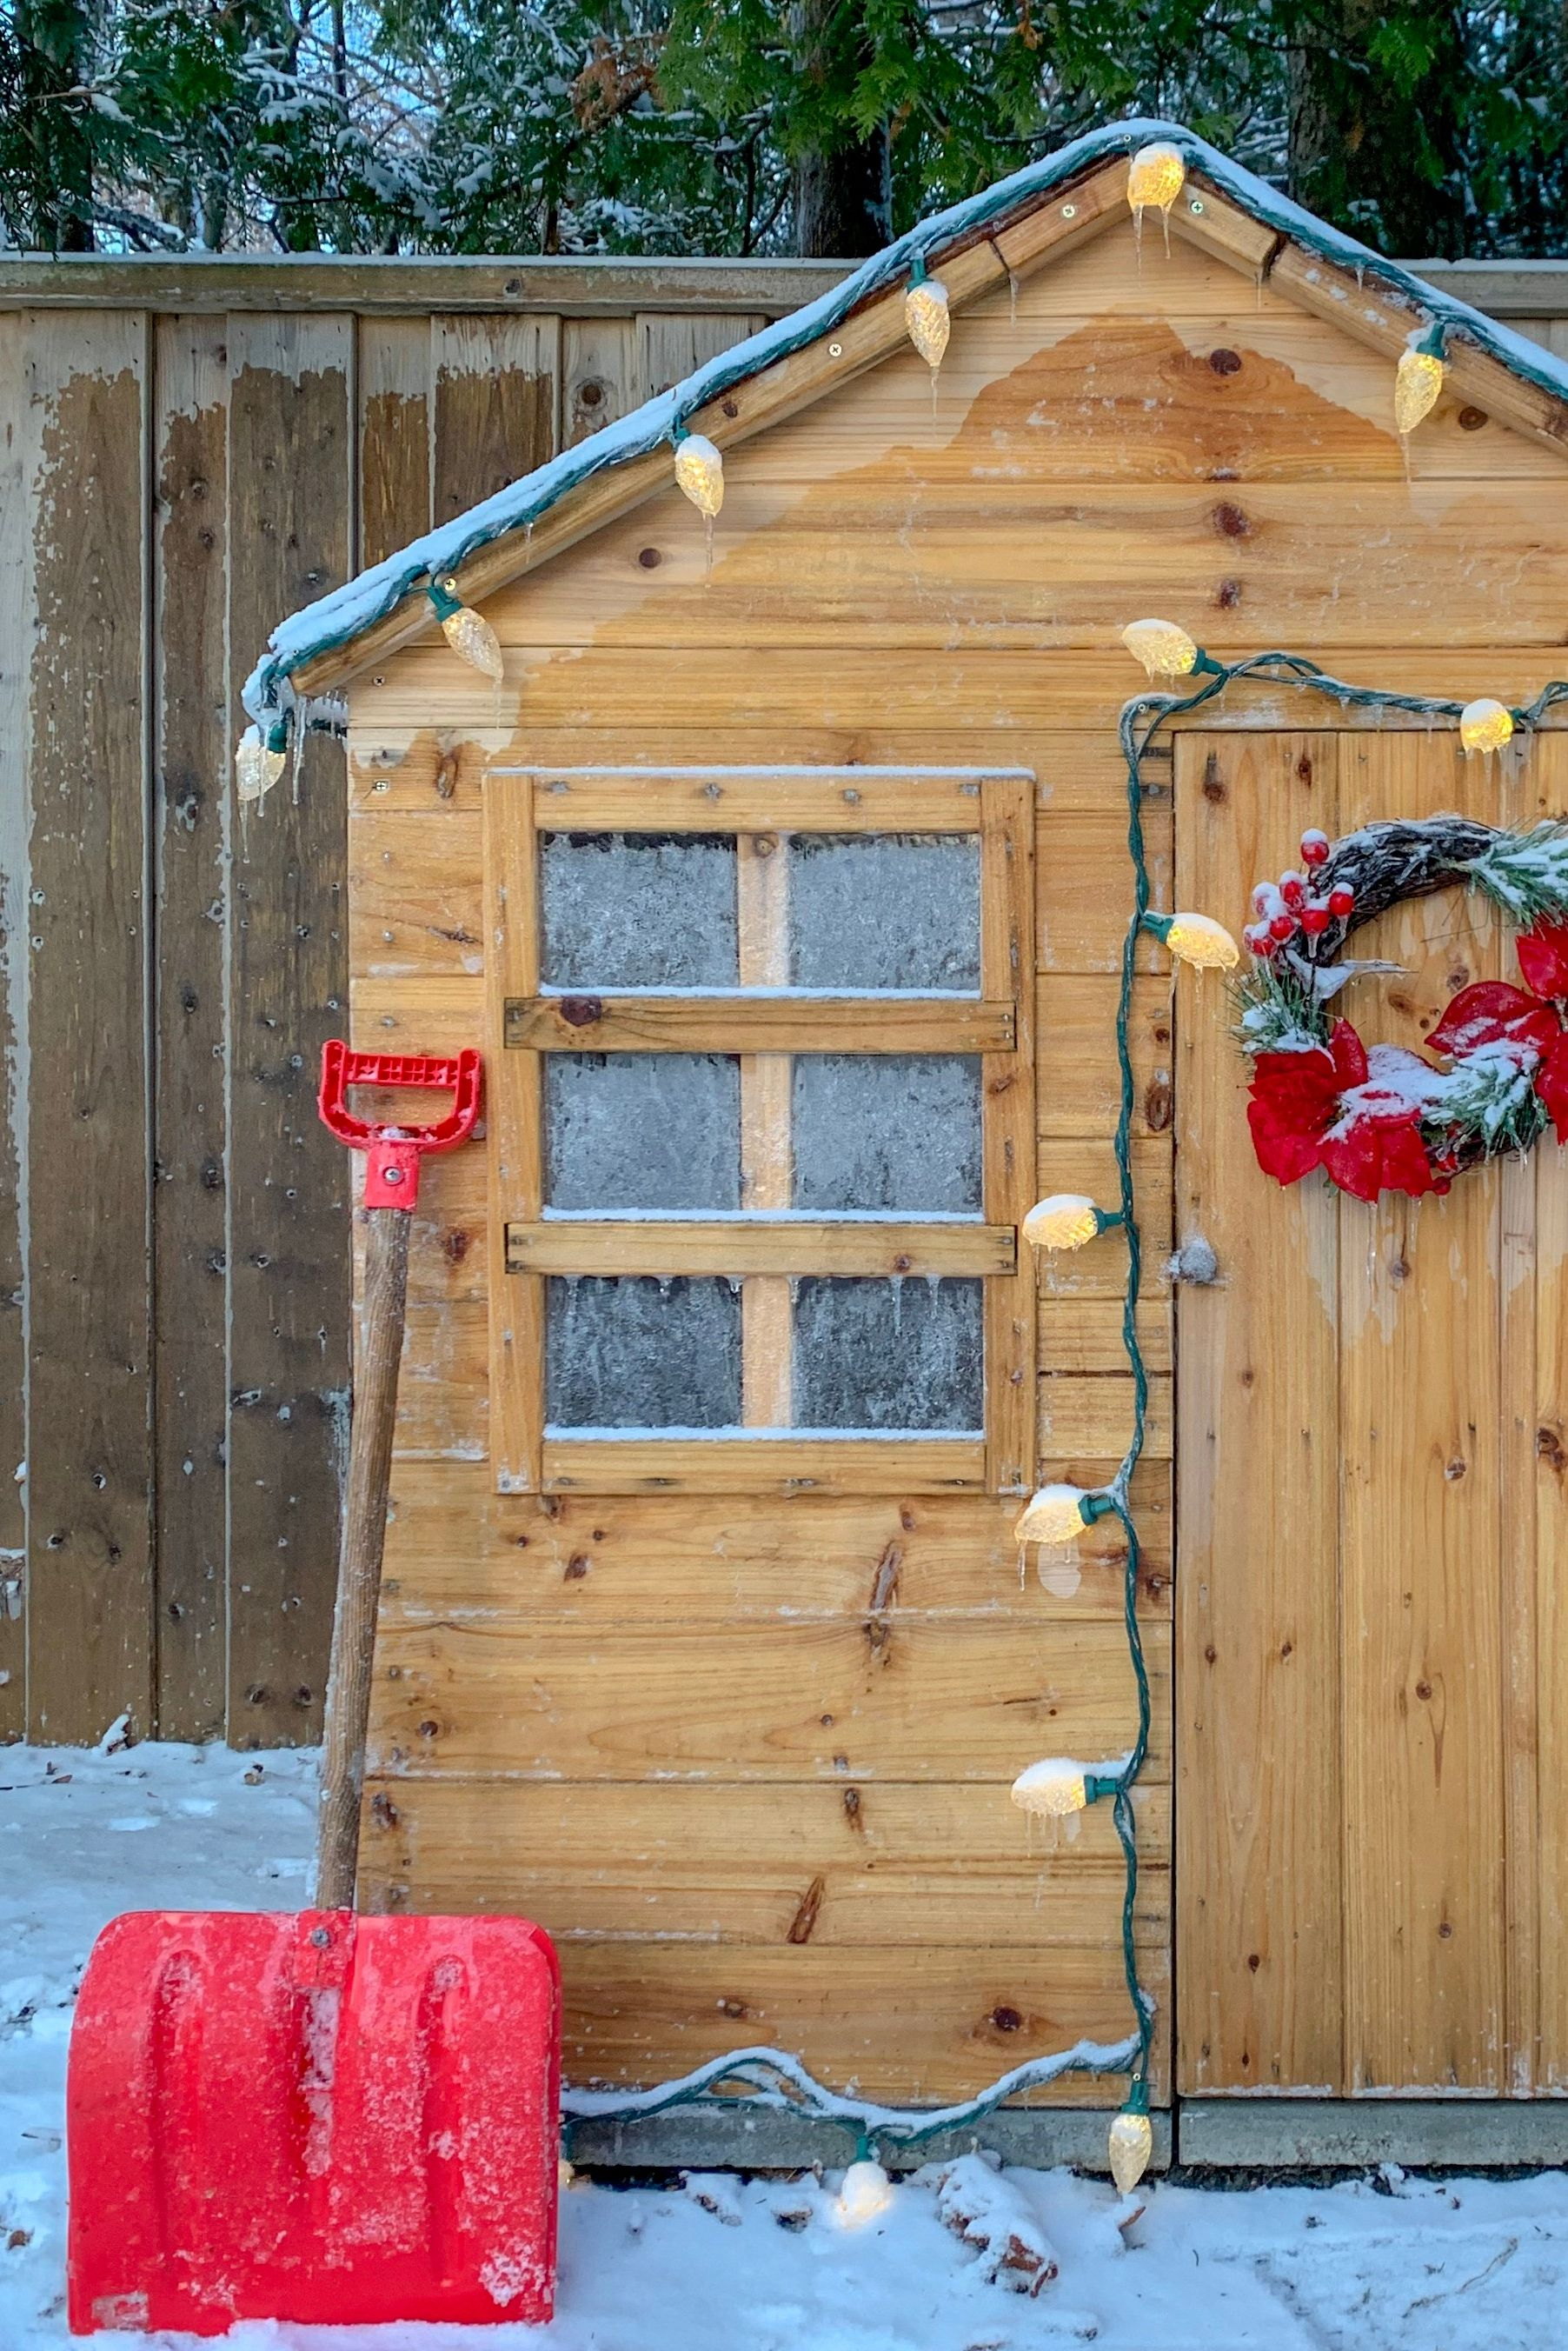 Who wouldn't love a little Christmas grotto in their own